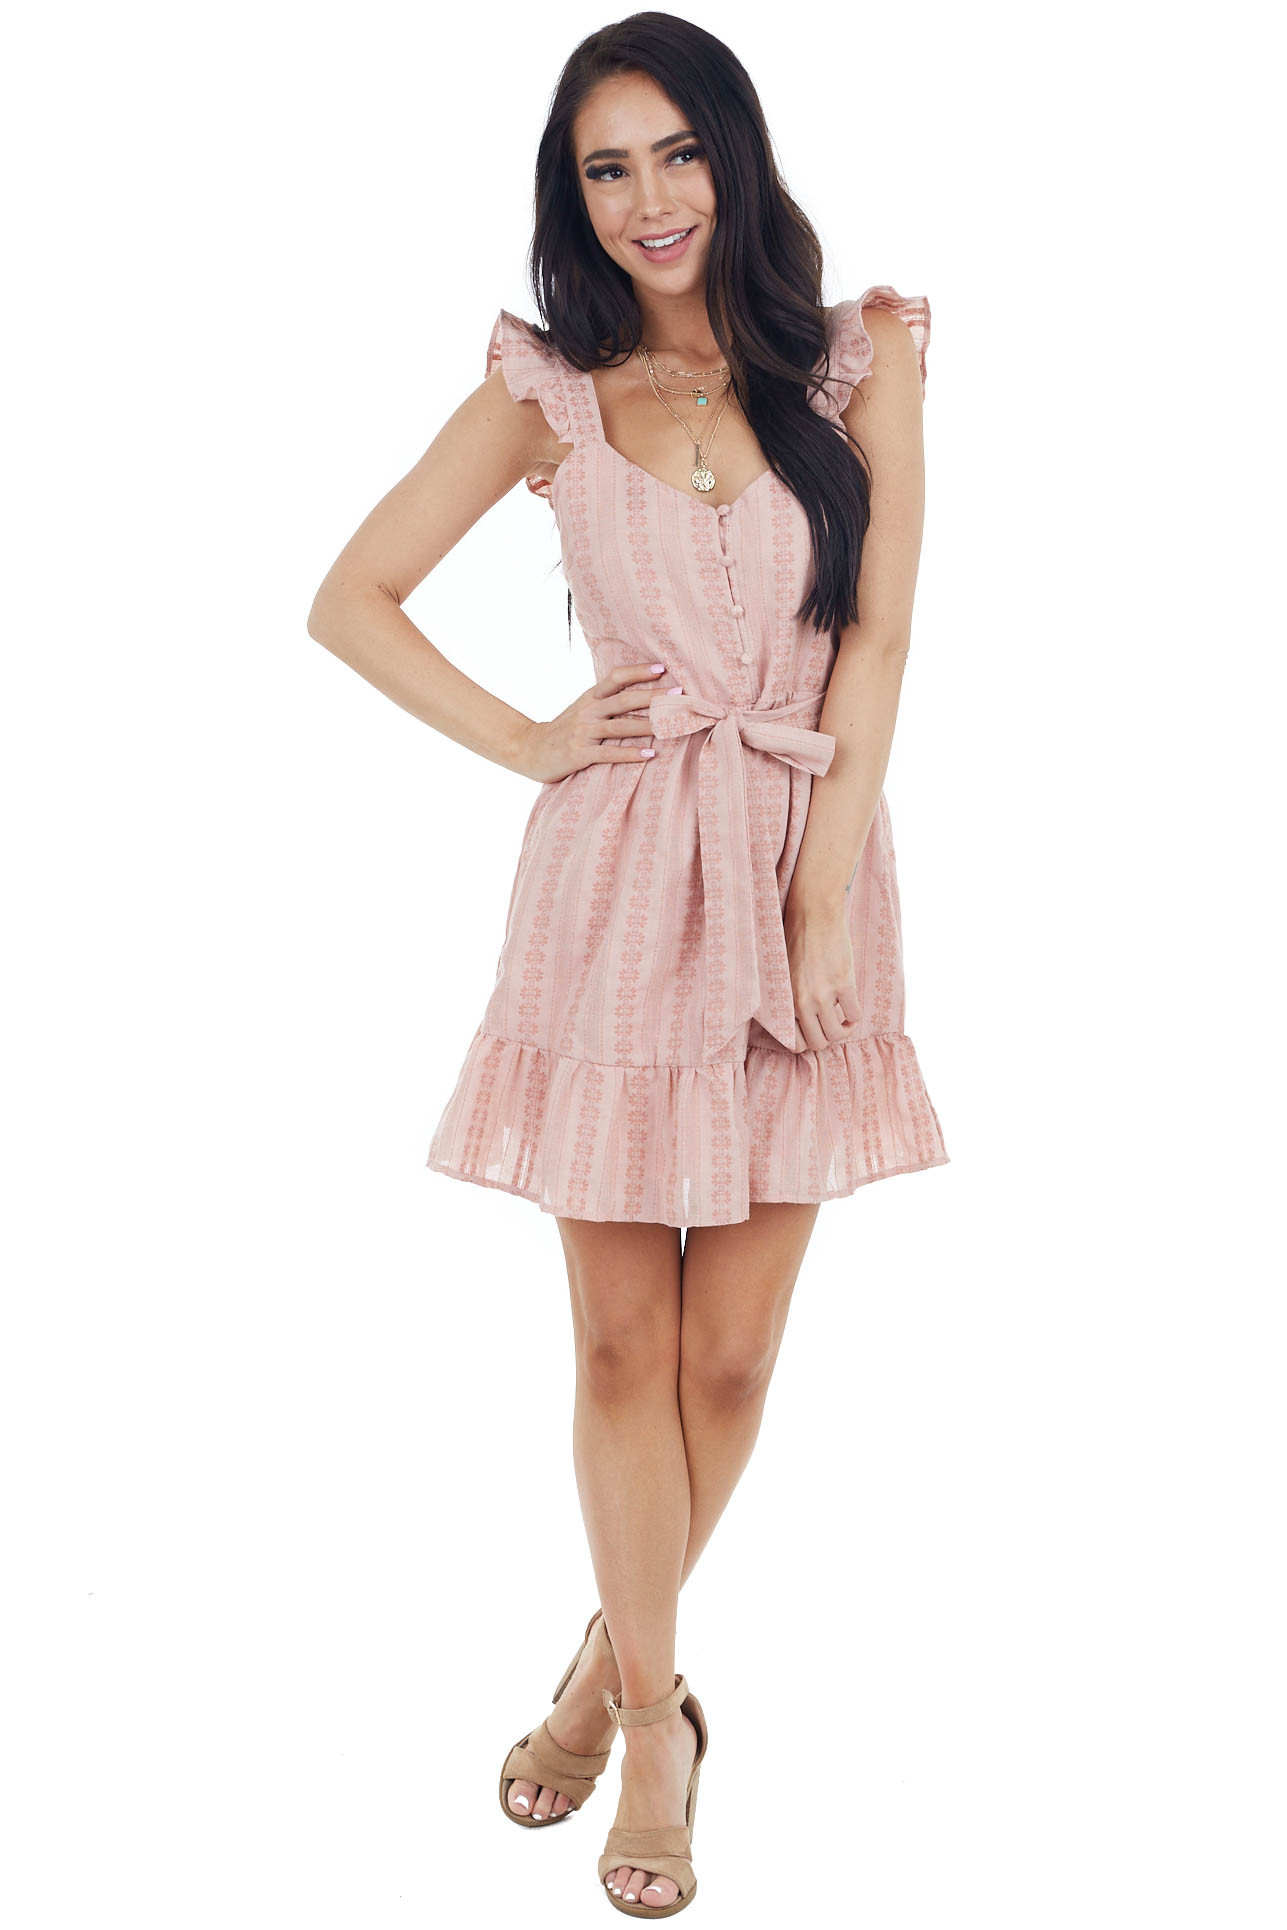 Blush Tiered Sleeveless Mini Dress with Thread Details